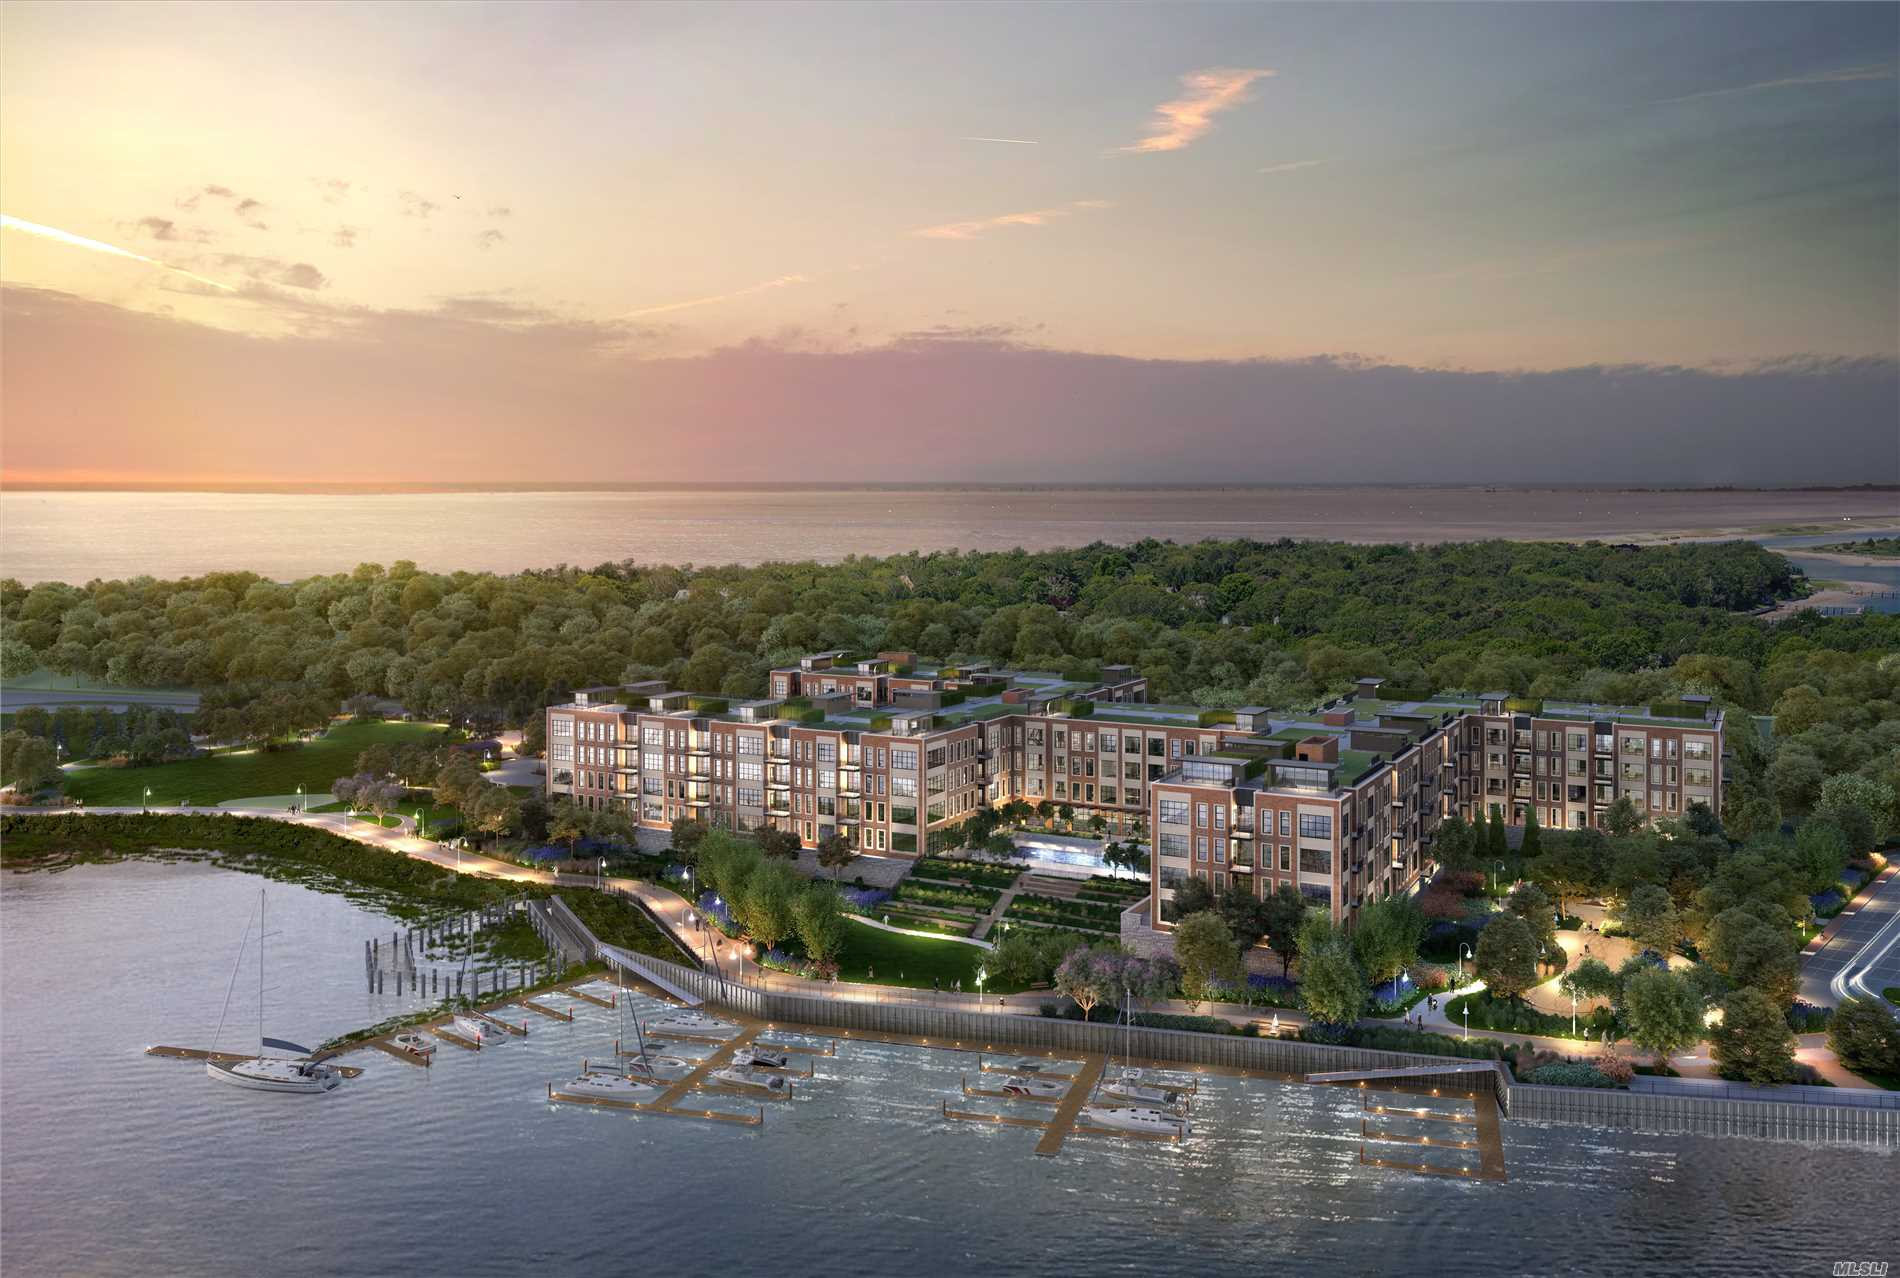 Property for sale at 100 Garvies Point Rd Road # 1335, Glen Cove NY 11542, Glen Cove,  New York 11542